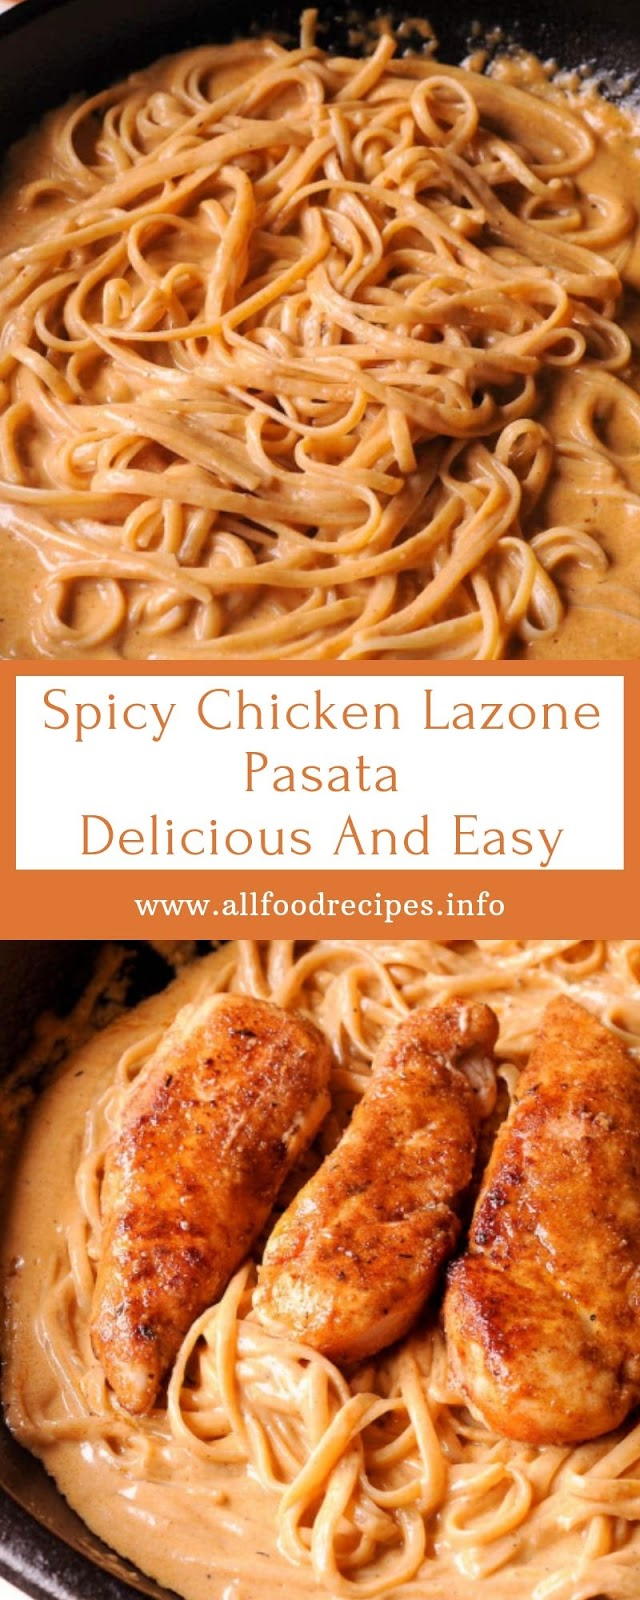 Spicy Chicken Lazone Pasata Delicious And Easy